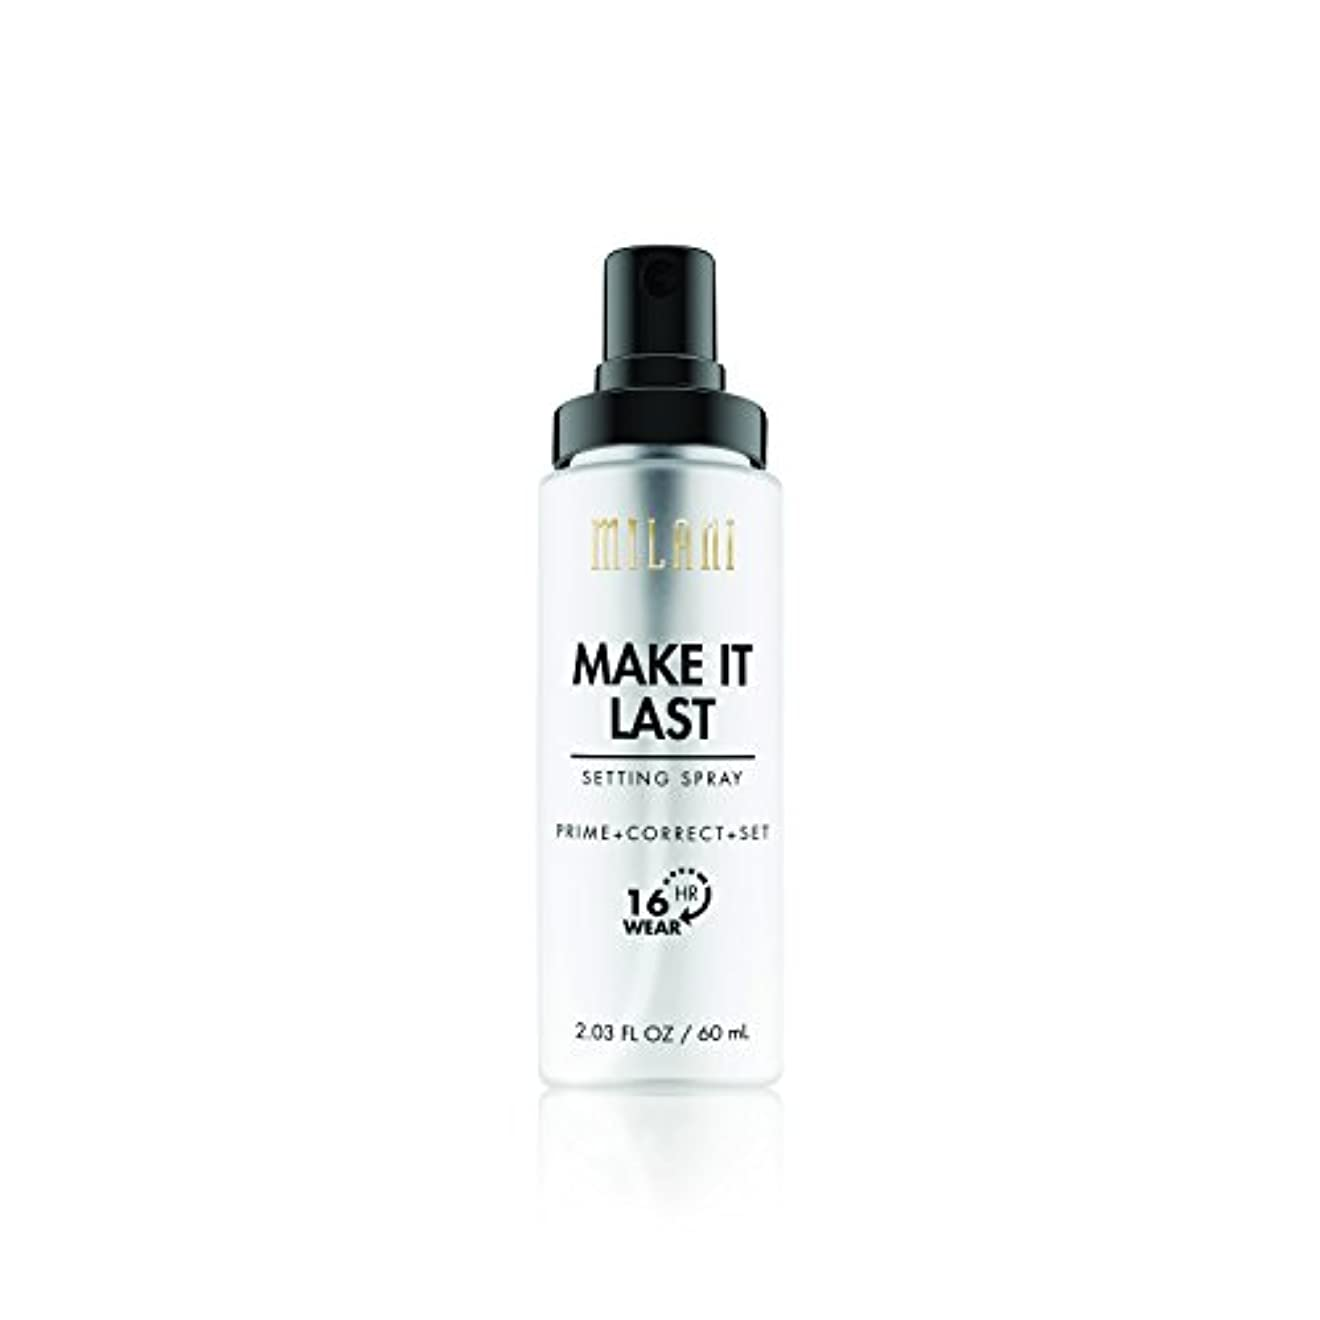 弾薬今わざわざMILANI Make It Last Setting Spray - Prime + Correct + Set (並行輸入品)